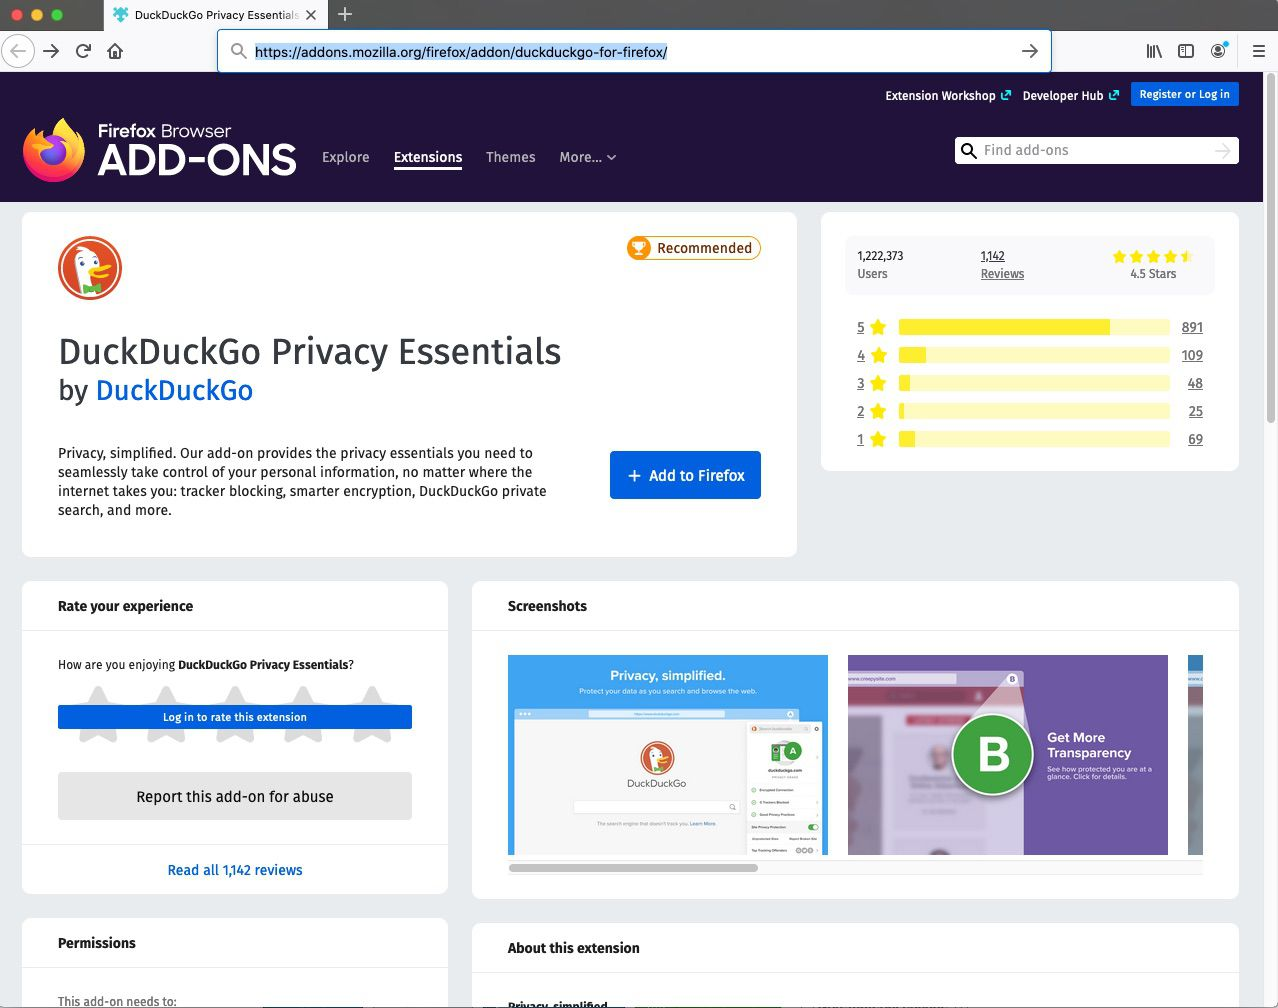 Find DuckDuckGo Privacy Essentials on the Mozilla Firefox Add-On page.